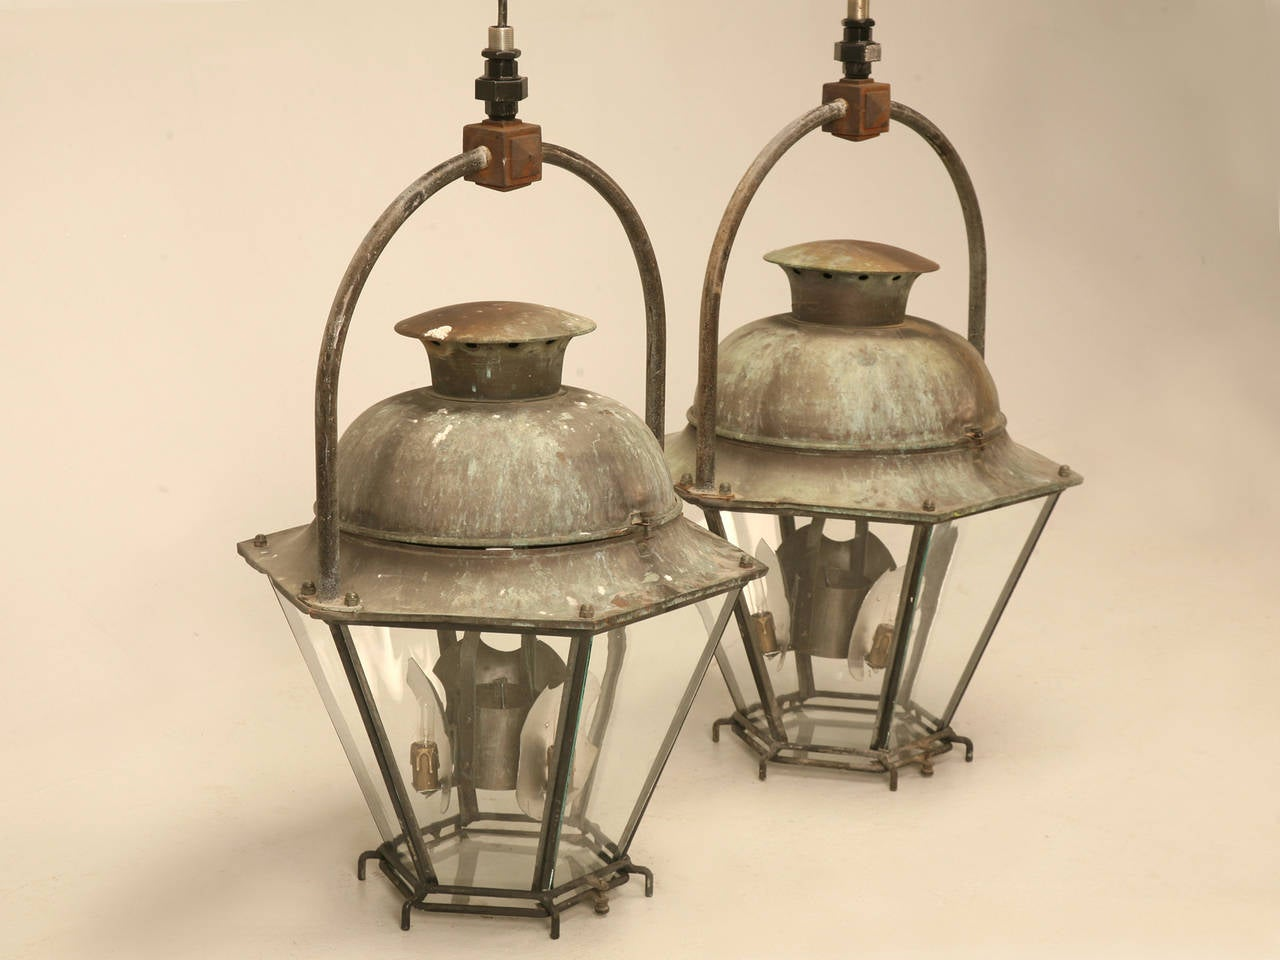 Pair Of Antique Copper French Lanterns In The 18th Century